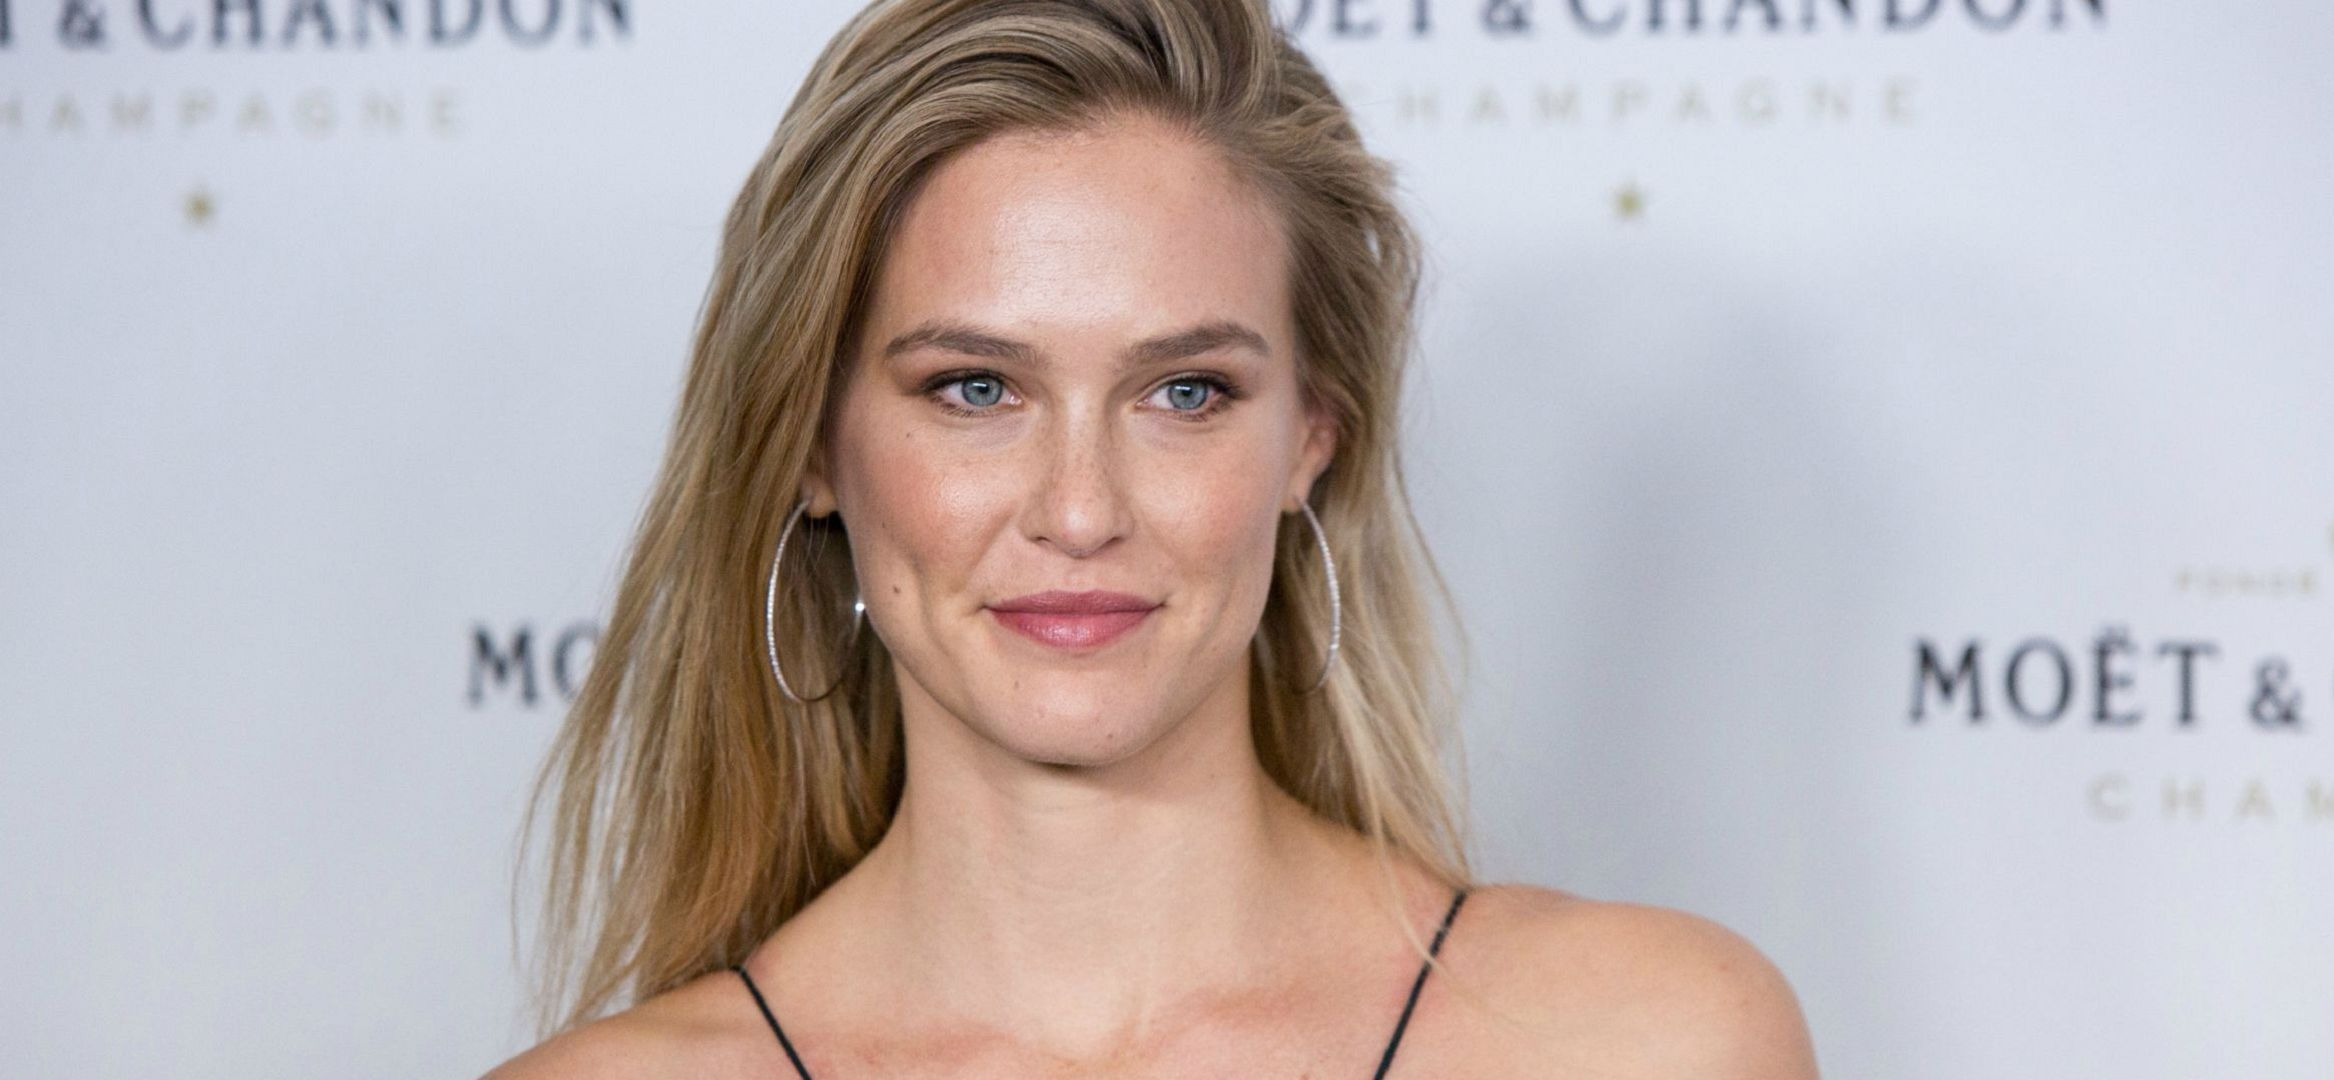 Bar Refaeli High Quality Wallpapers